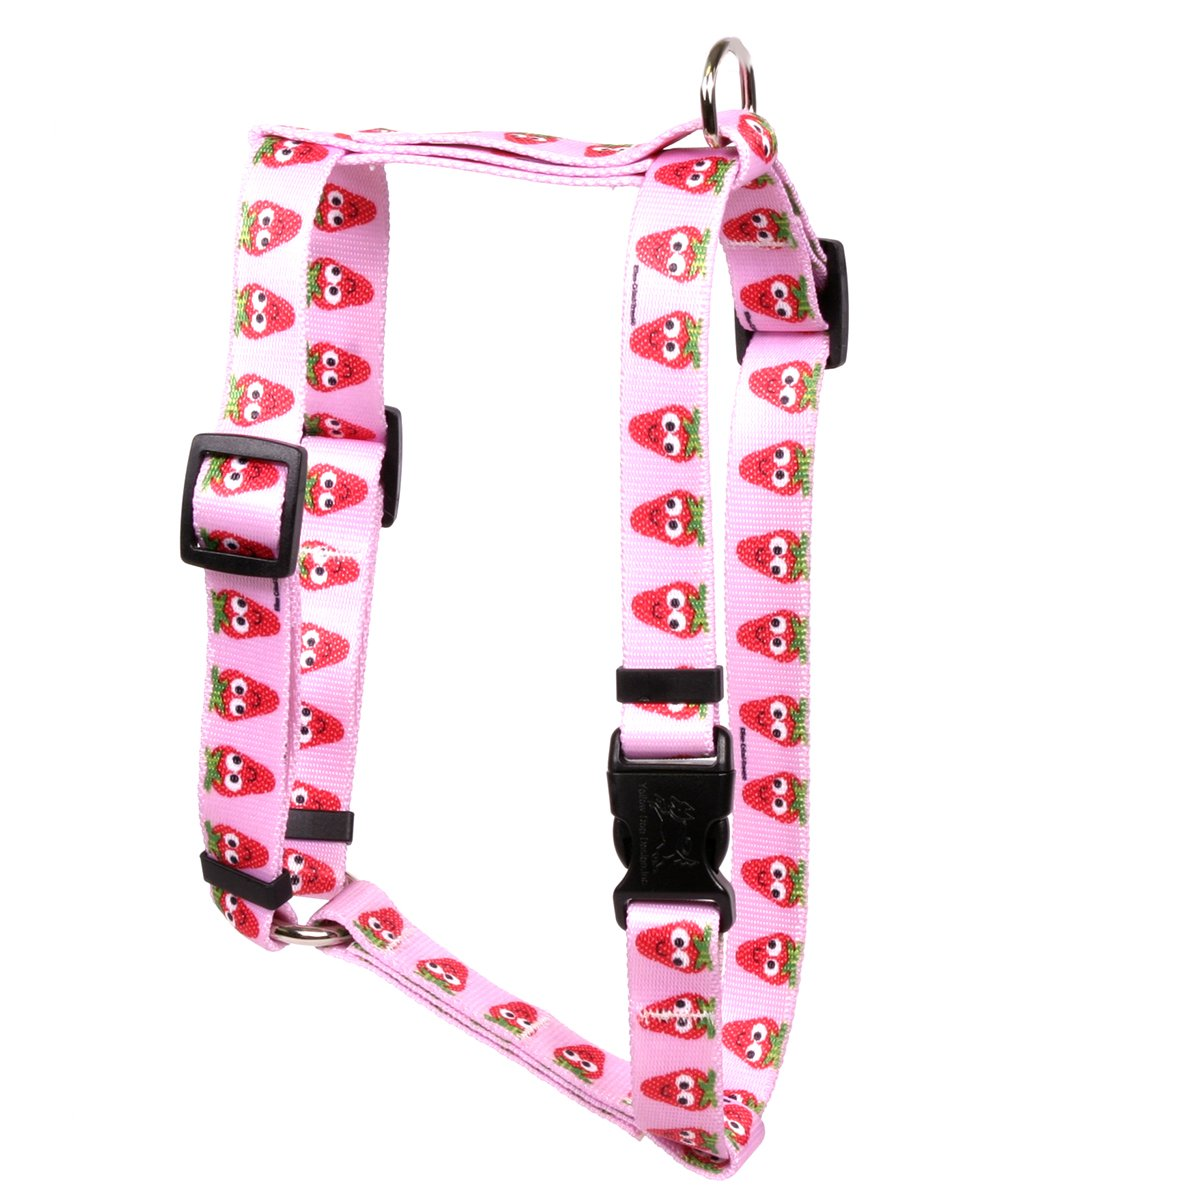 Yellow Dog Design Sweet Strawberries Roman Style Dog Harness-X-Large-1'' and fits Chest 28 to 36''